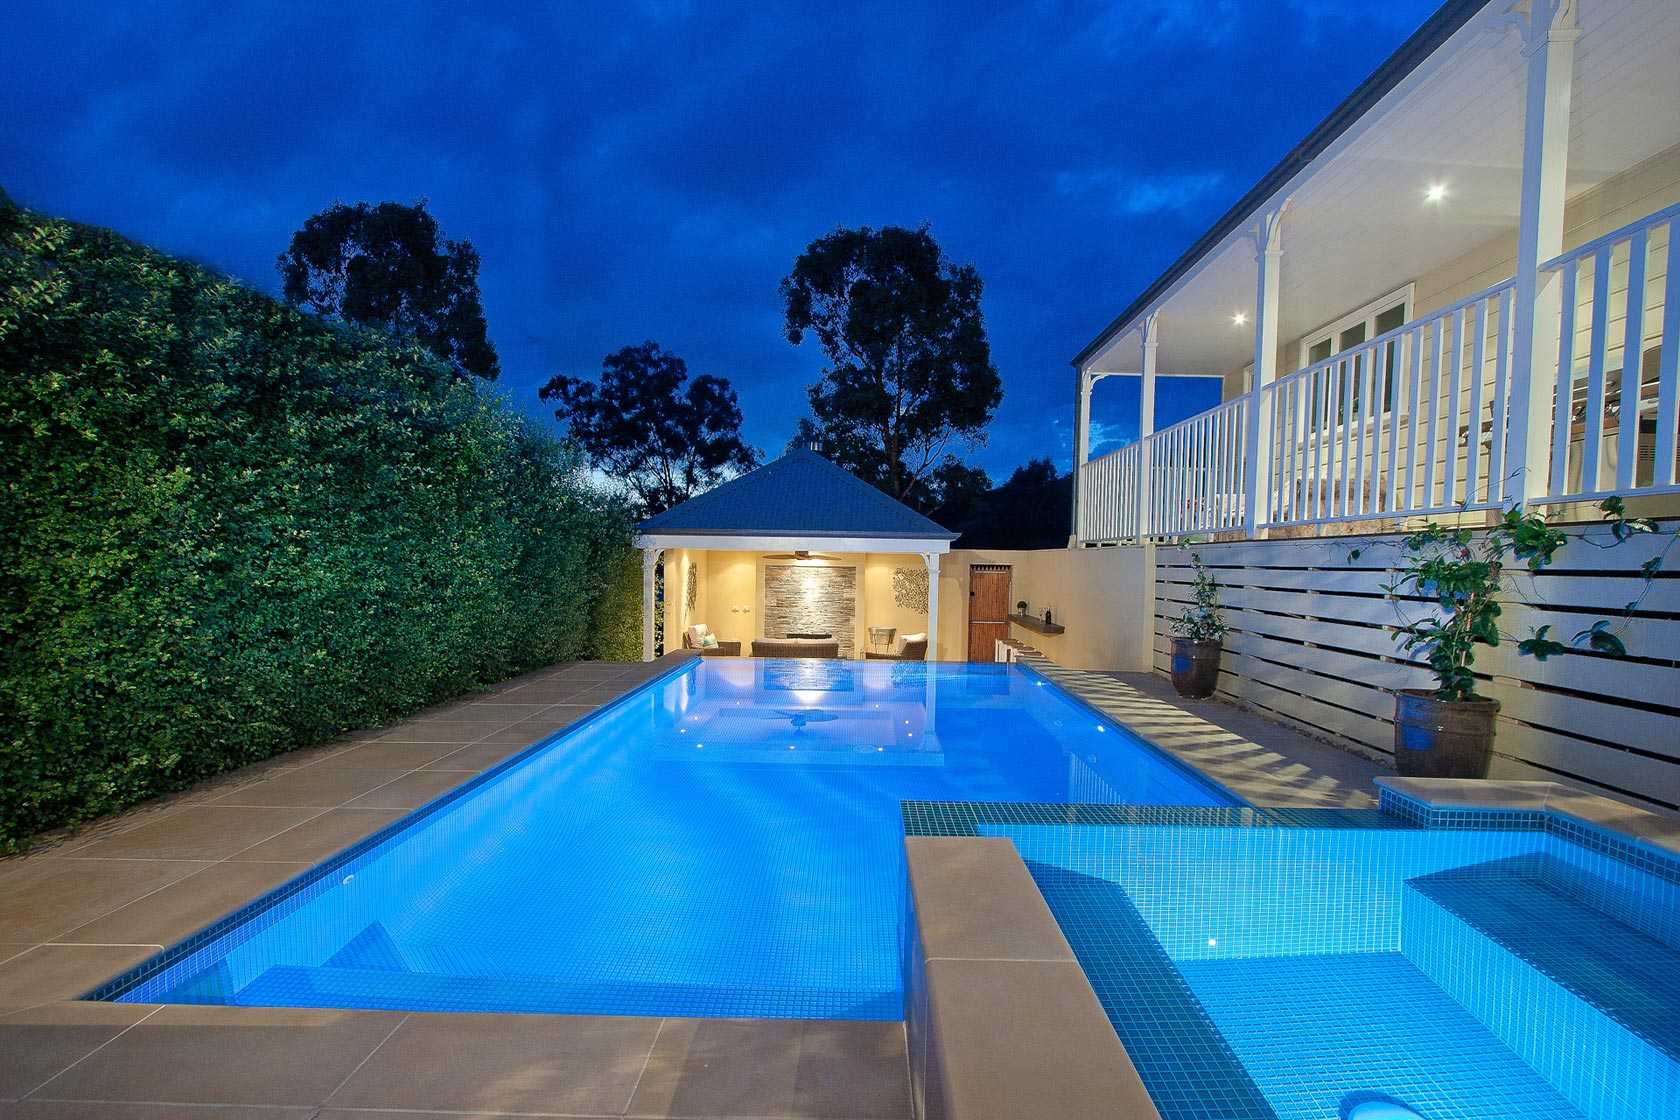 landscape pool designs melbourne pdf